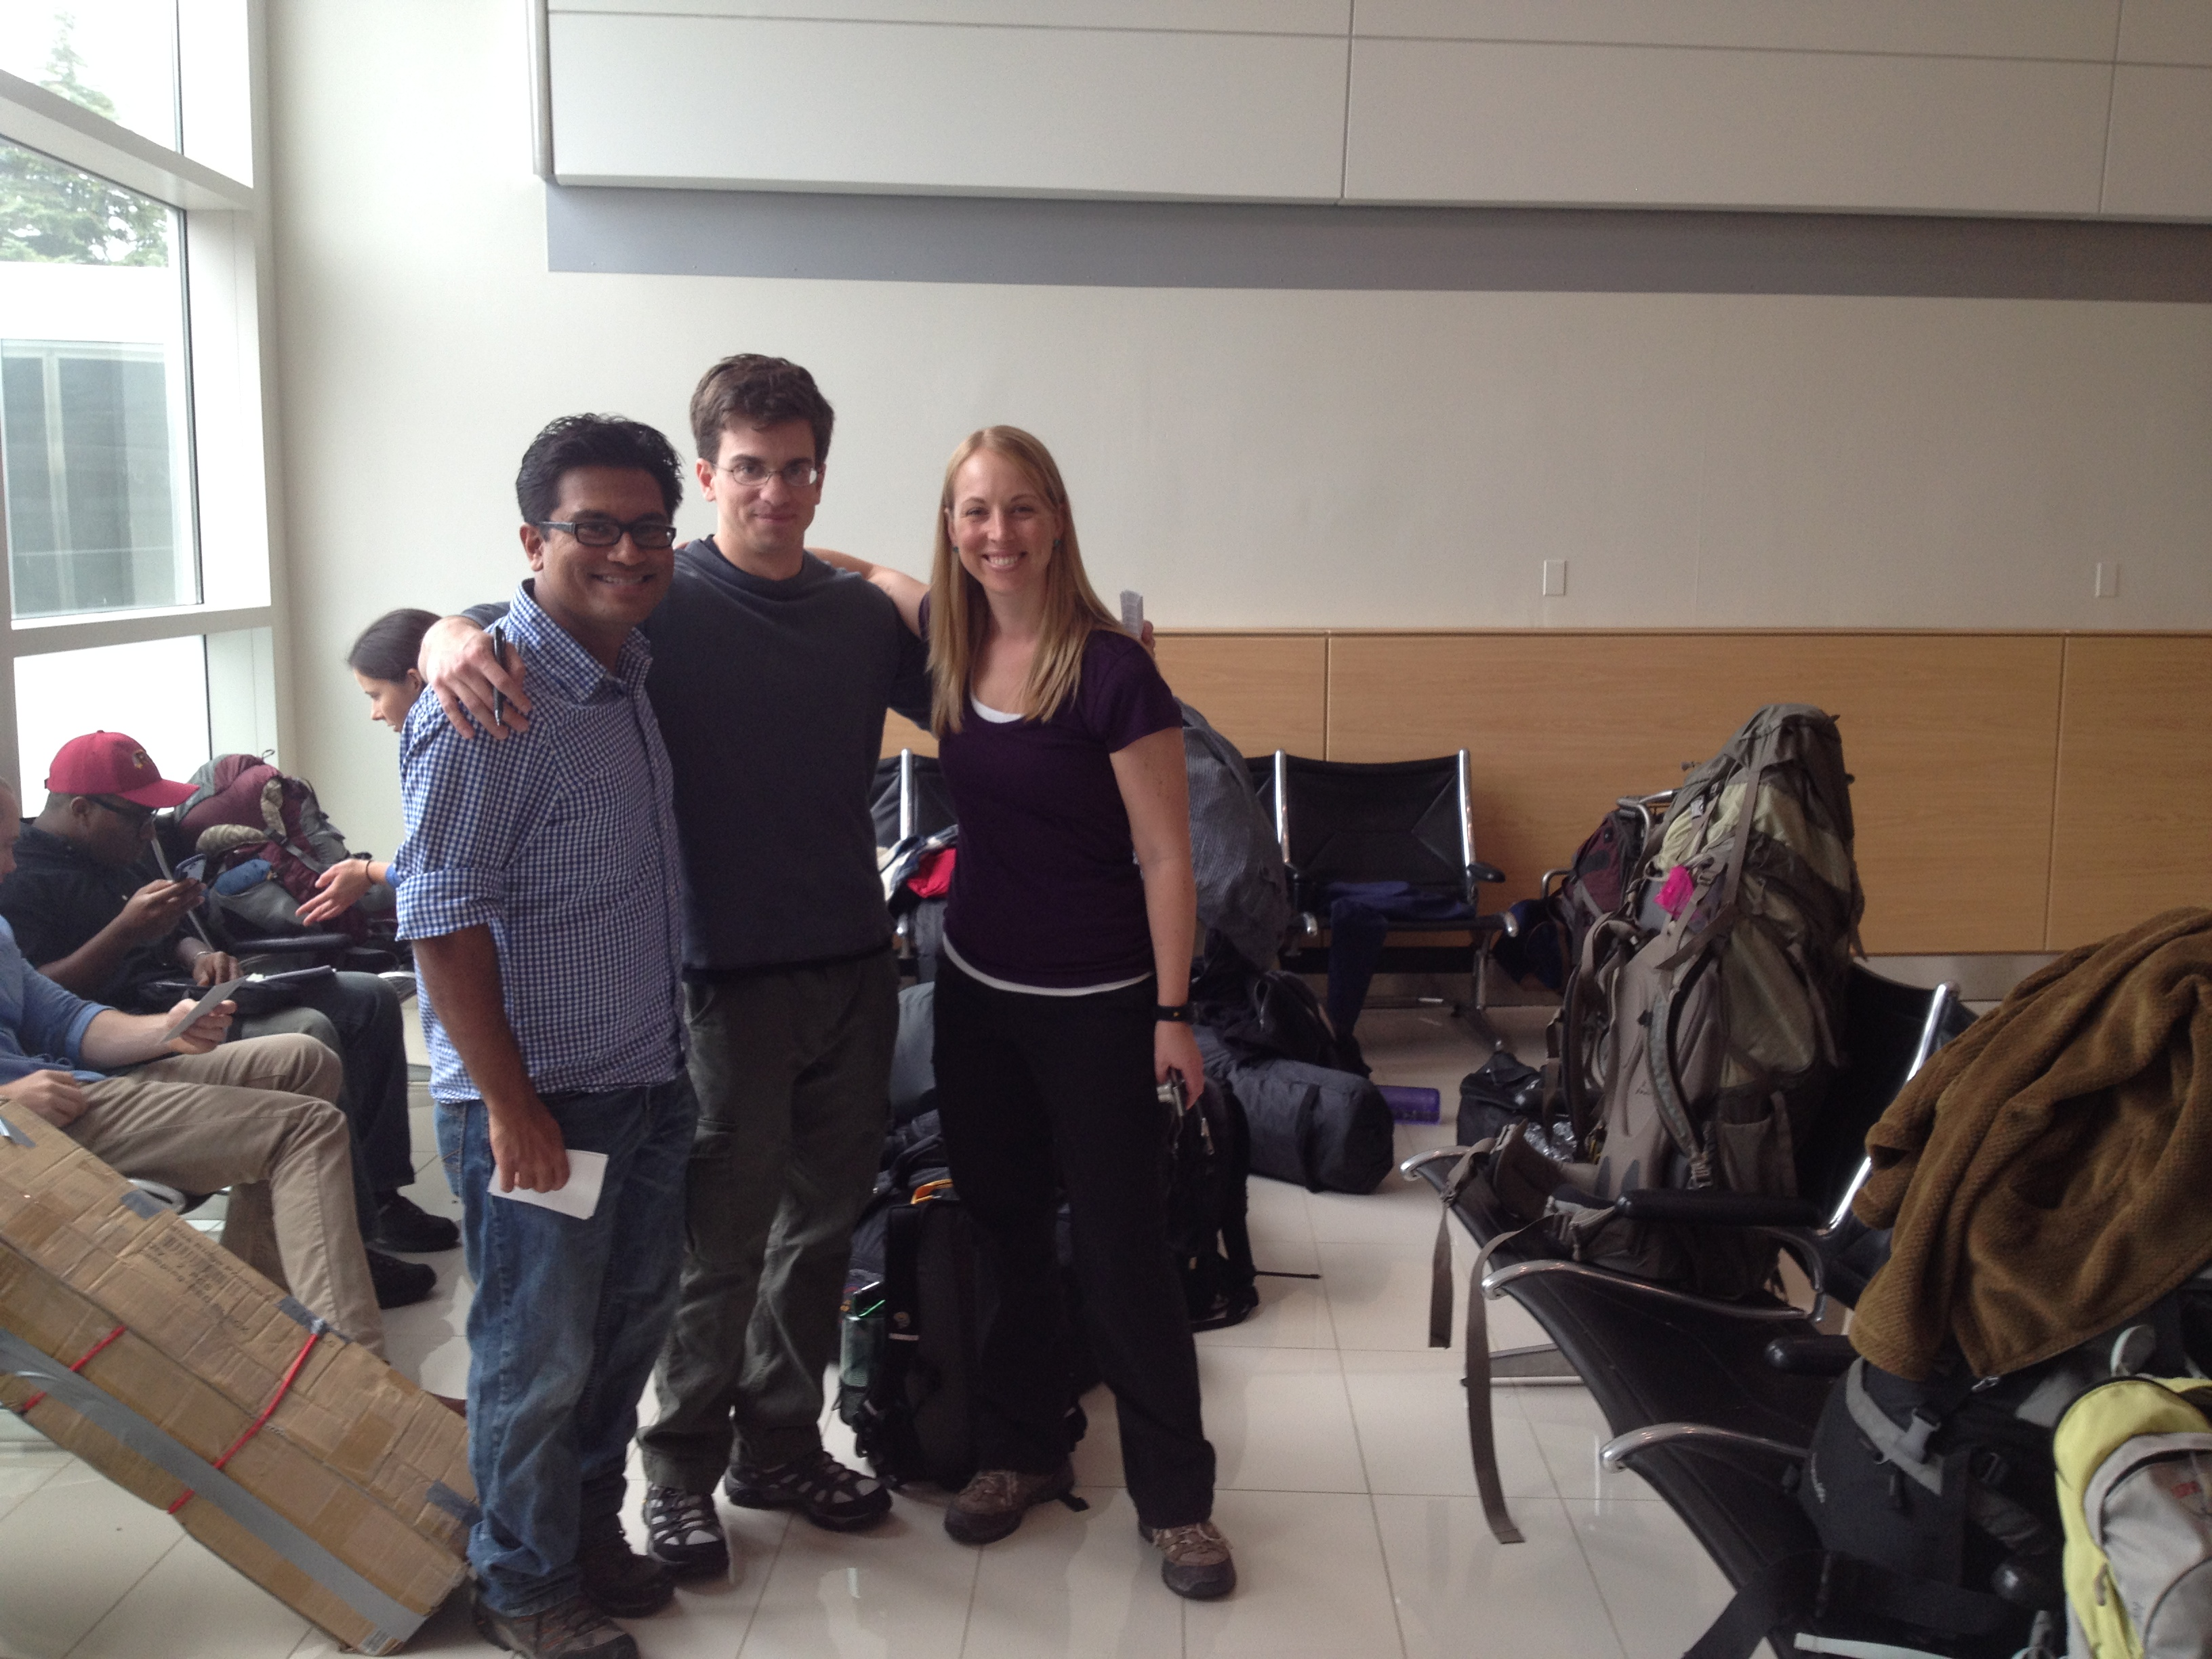 L-R: Rahul, Gavin, and Lauren at the airport waiting to check in.